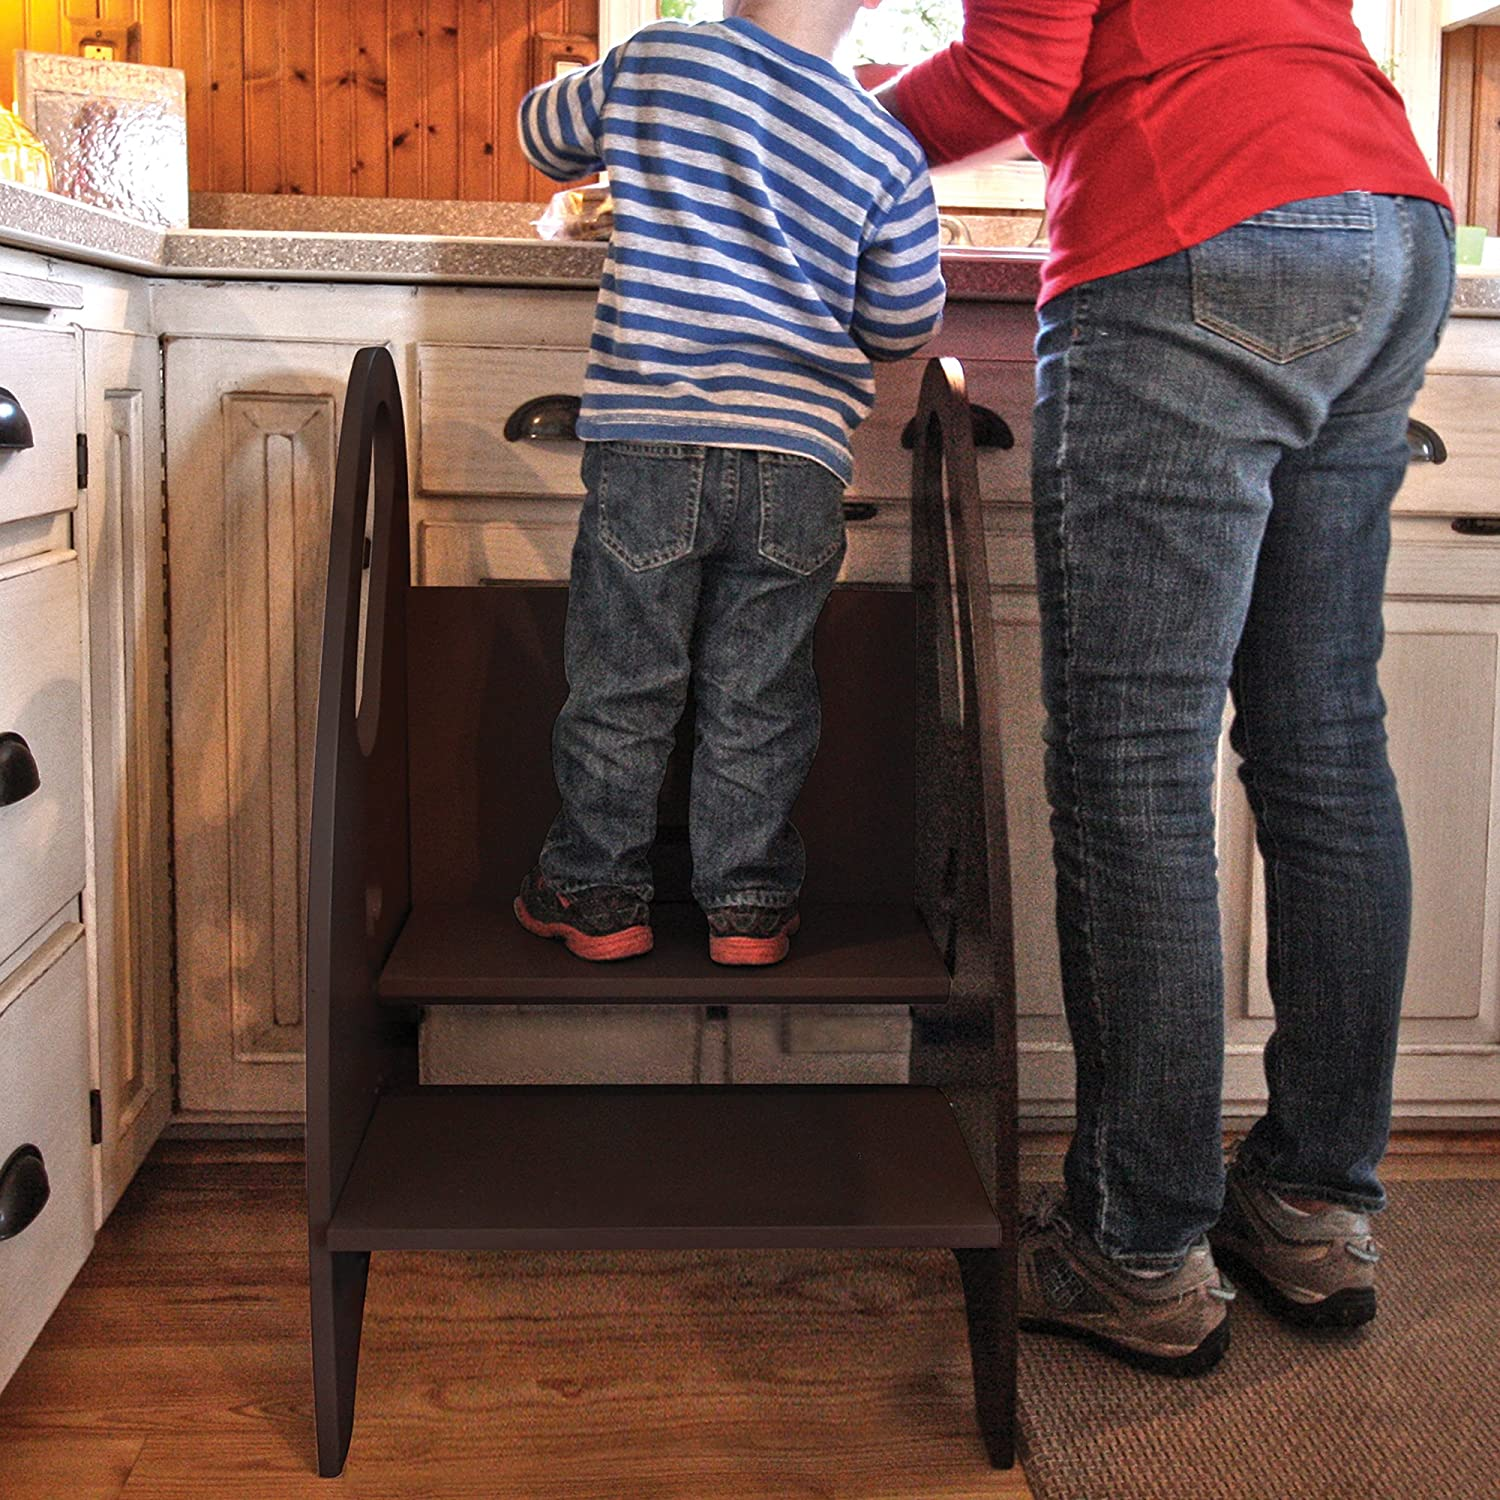 Amazon.com The Growing Step Stool by Little Partners (Stone Grey) u2013 Adjustable Height Nursery Kitchen or Bathroom Kids Footstool u2013 Wooden Non-Tip Design ... & Amazon.com: The Growing Step Stool by Little Partners (Stone Grey ... islam-shia.org